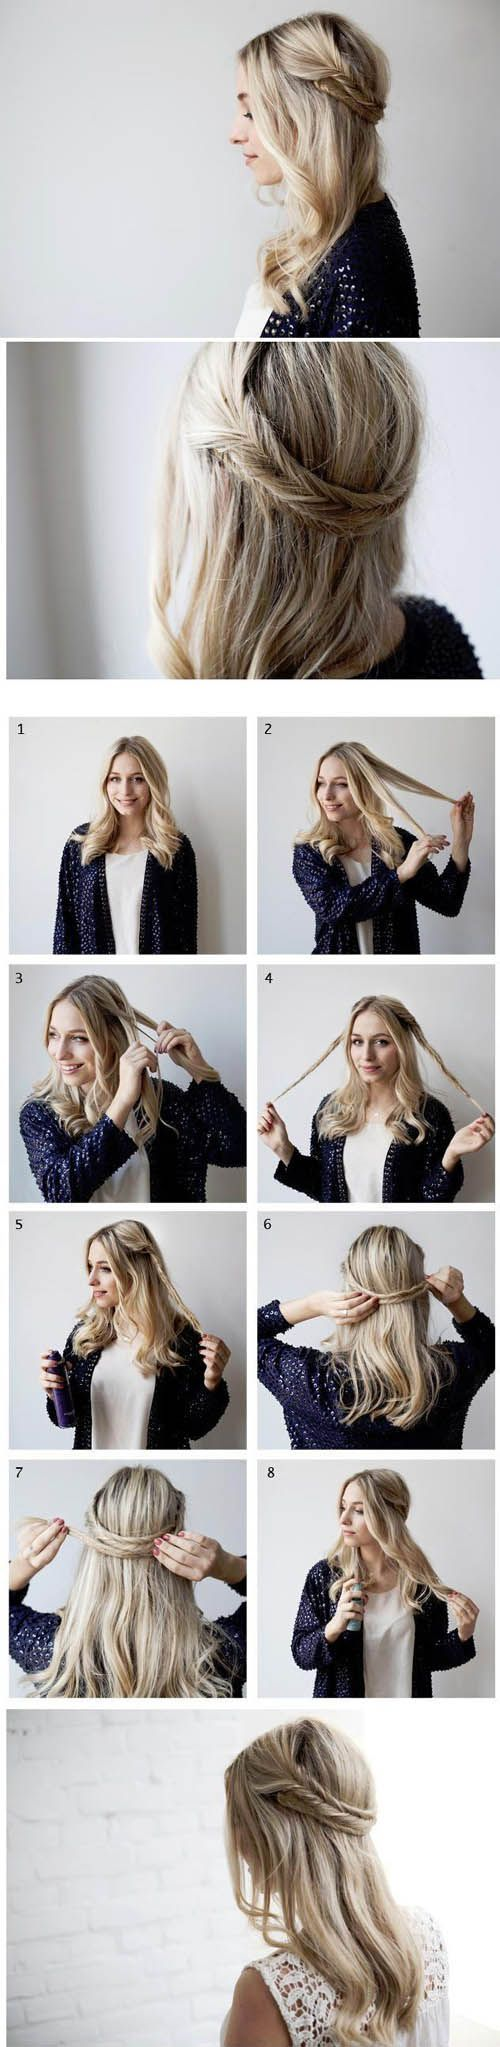 30 Elegant Hairstyles To Make You Look Pretty In Every Occasion - Page 3 of 4 - Trend To Wear